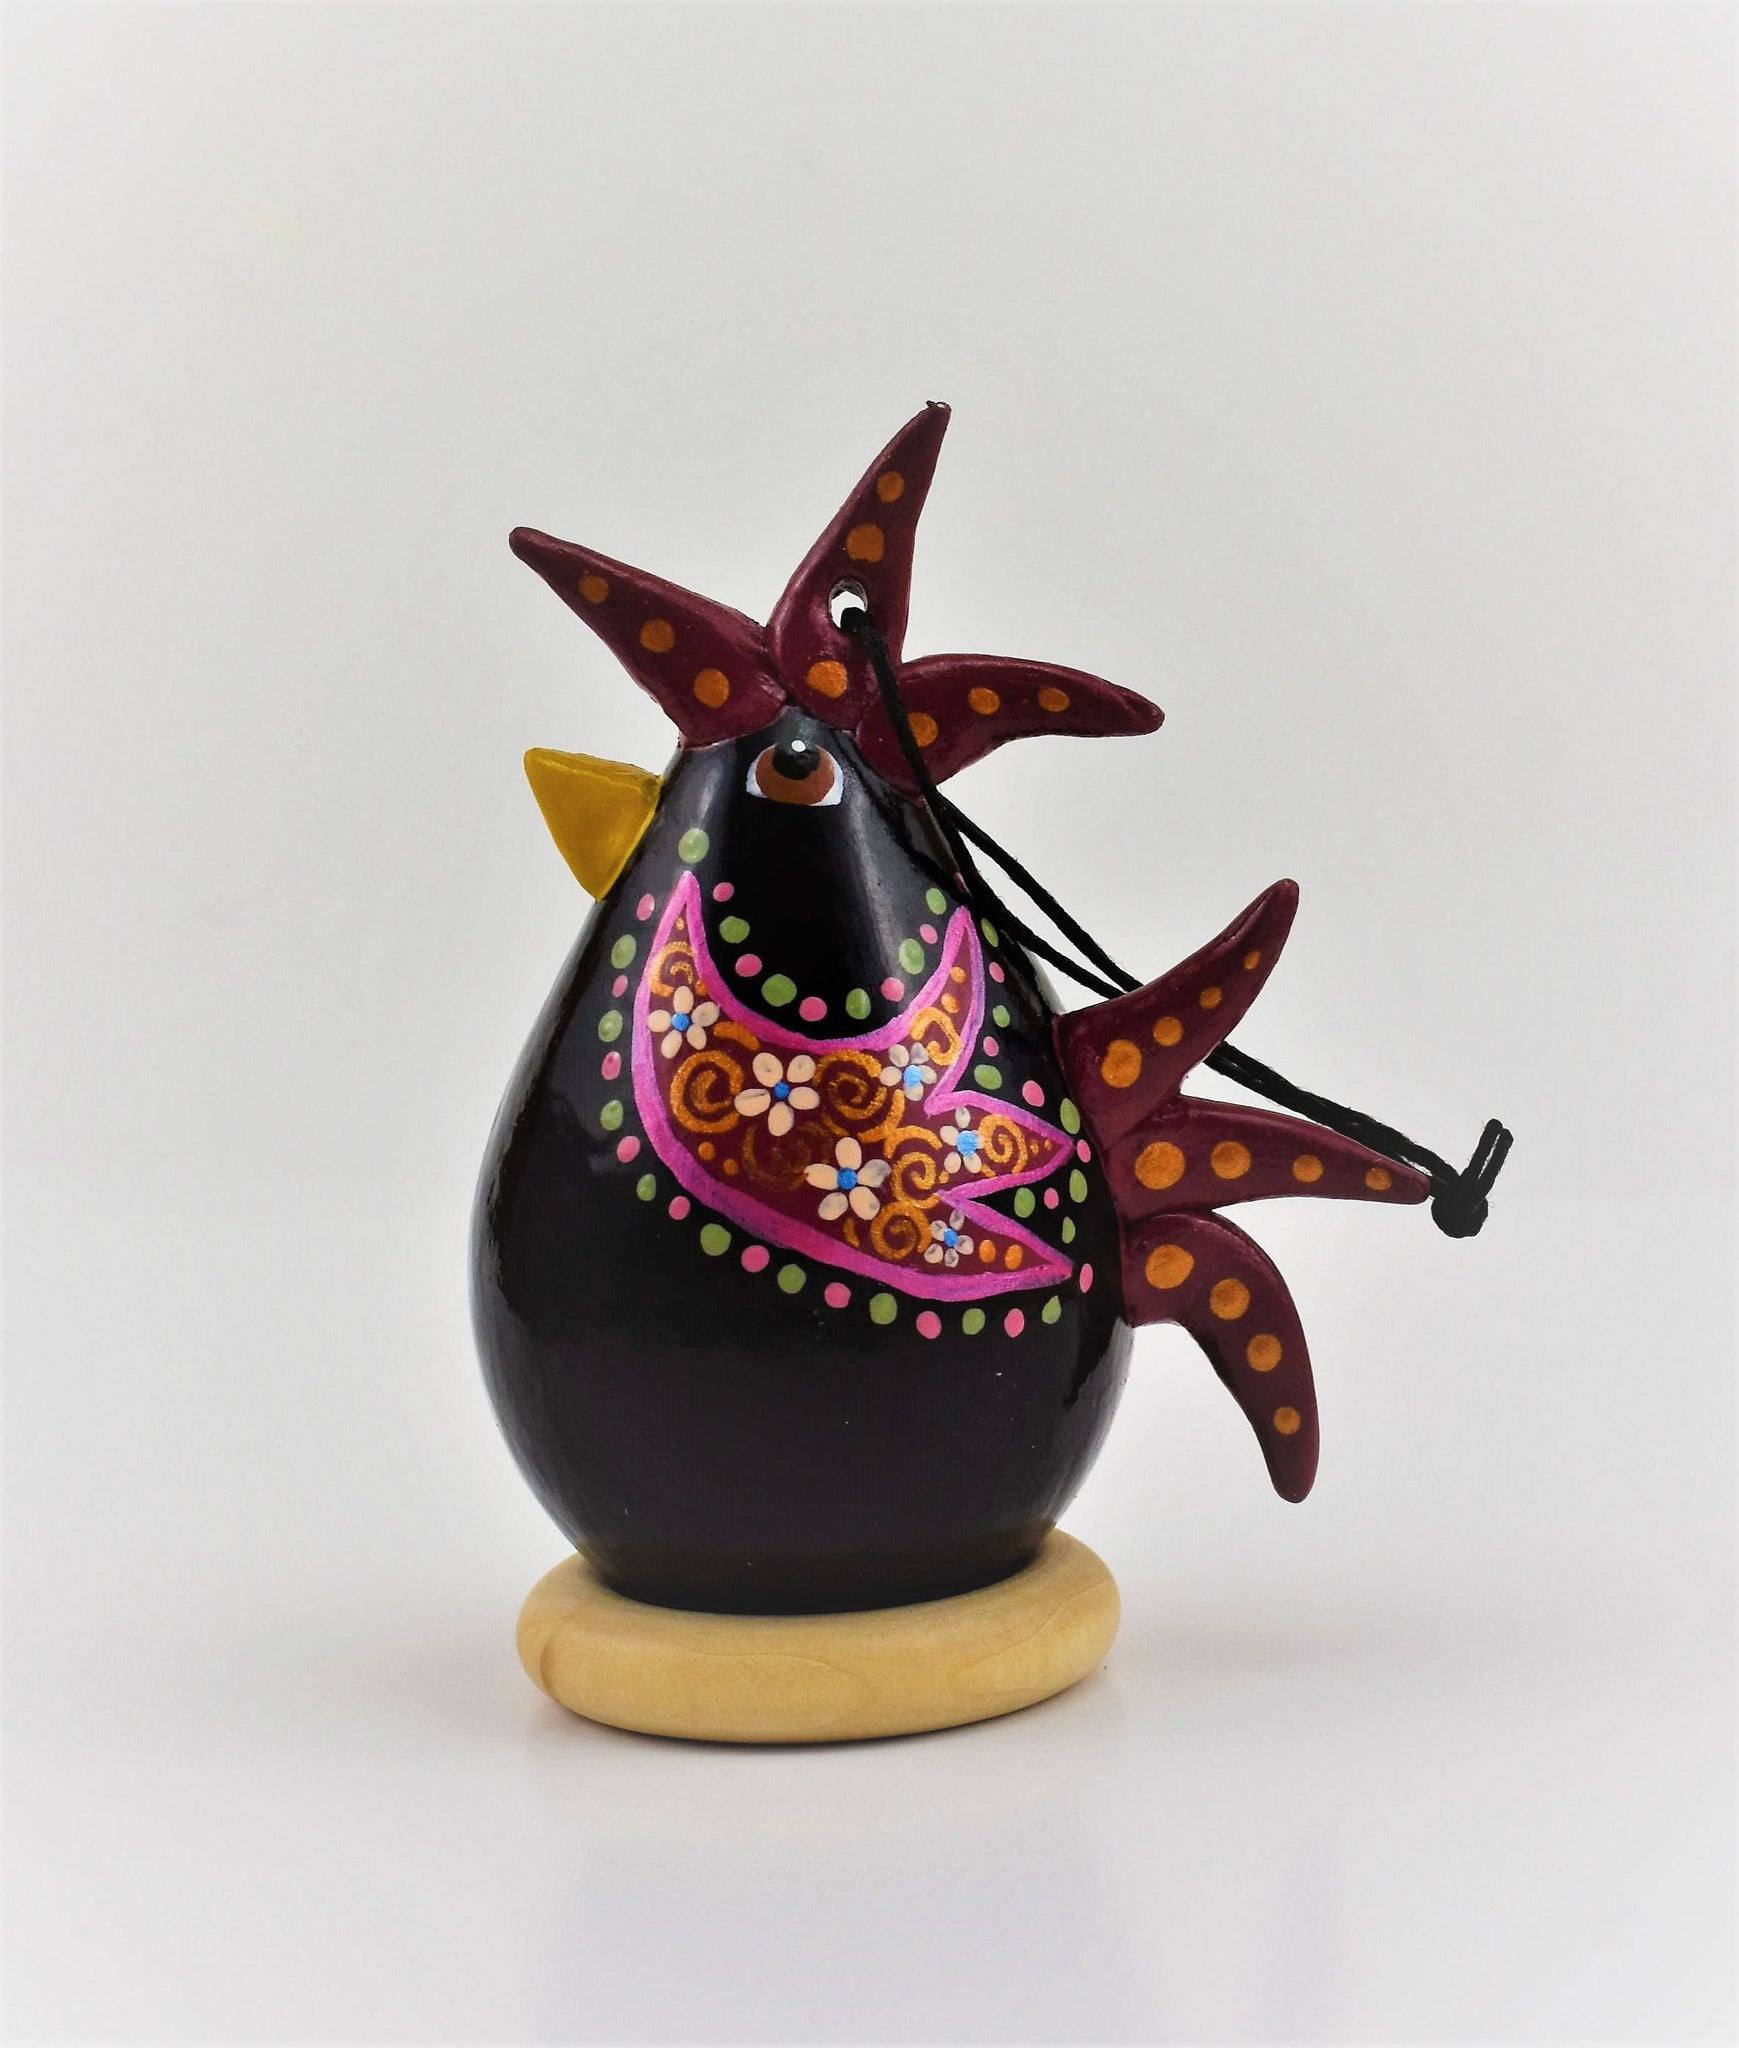 Rooster Art,  Ornament, Gourd Art, Black Rooster,  Red wings, polka dot,  Barnyard Decor